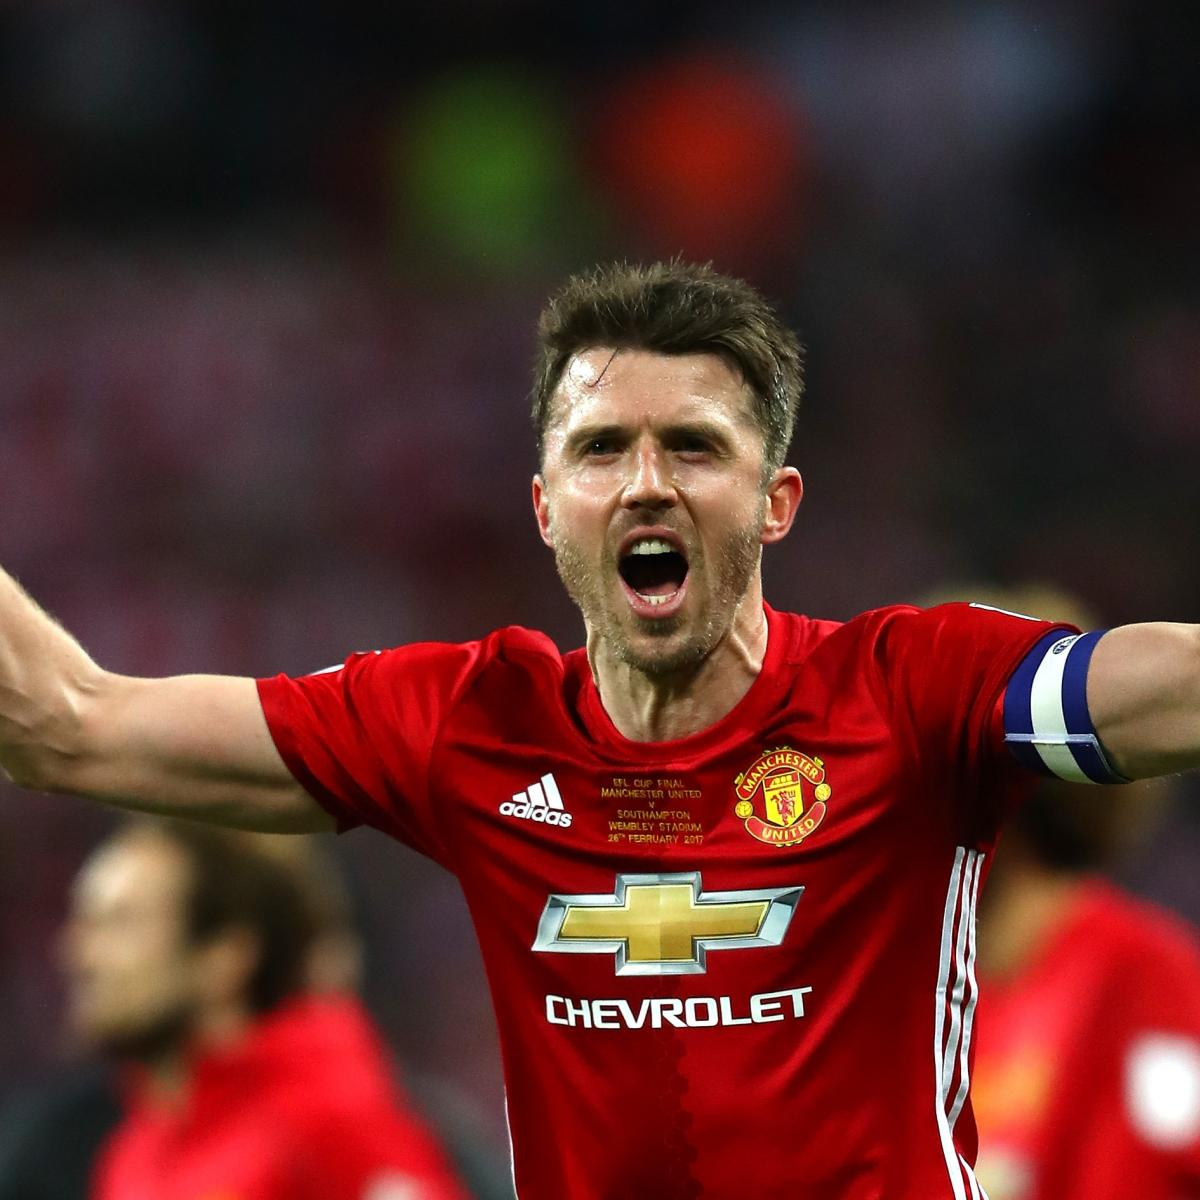 Michael Carrick Will 'Probably' Retire If New Manchester